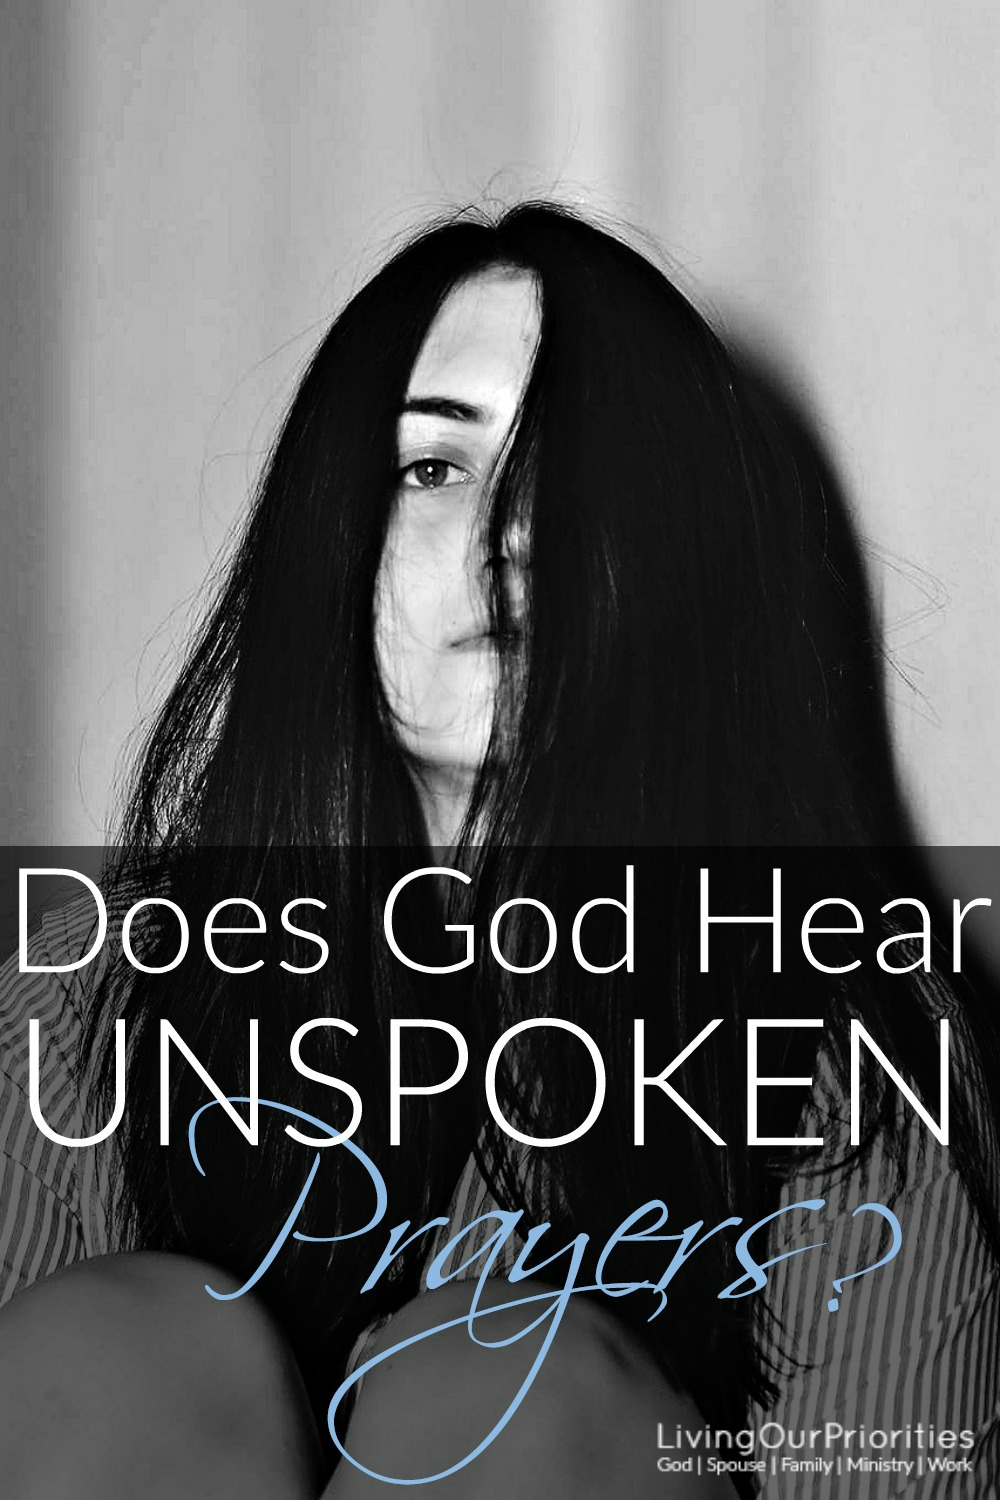 Have you said a prayer to yourself hoping that God would hear you? The truth is God knows our deepest thoughts and our unspoken prayers. #UnspokenPrayers #Prayers